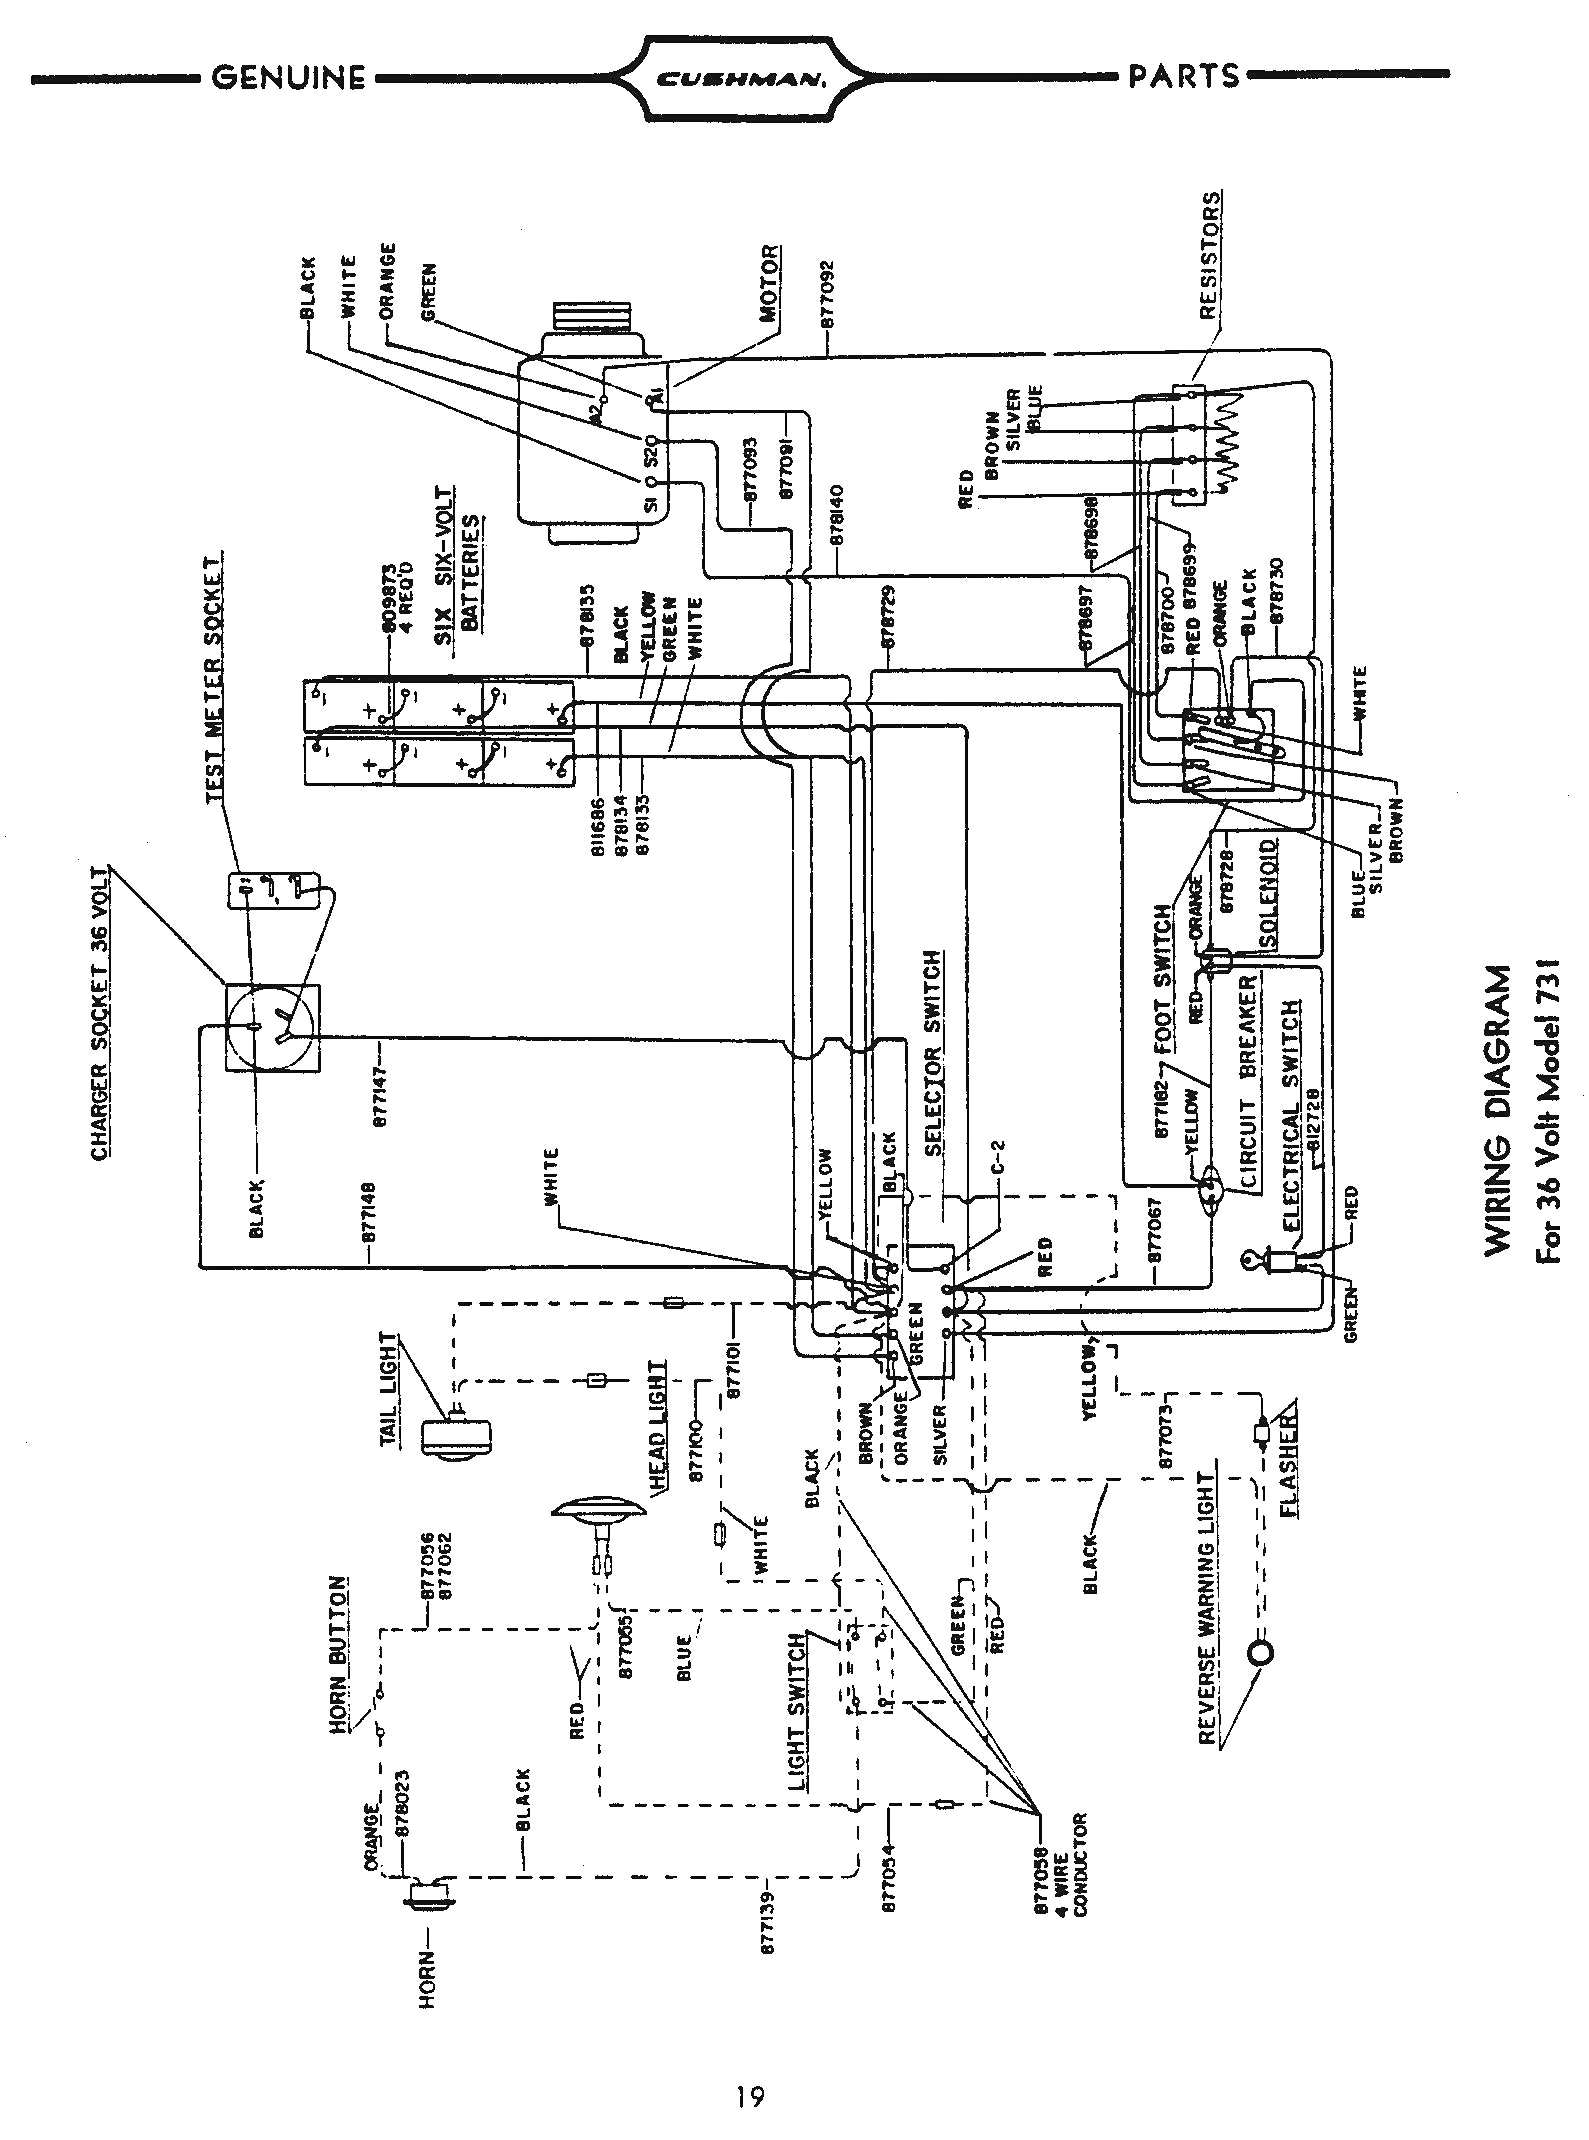 Taylor Dunn B2 48 Wiring Diagram Taylor Wiring Diagram Schema Wiring Diagram Database